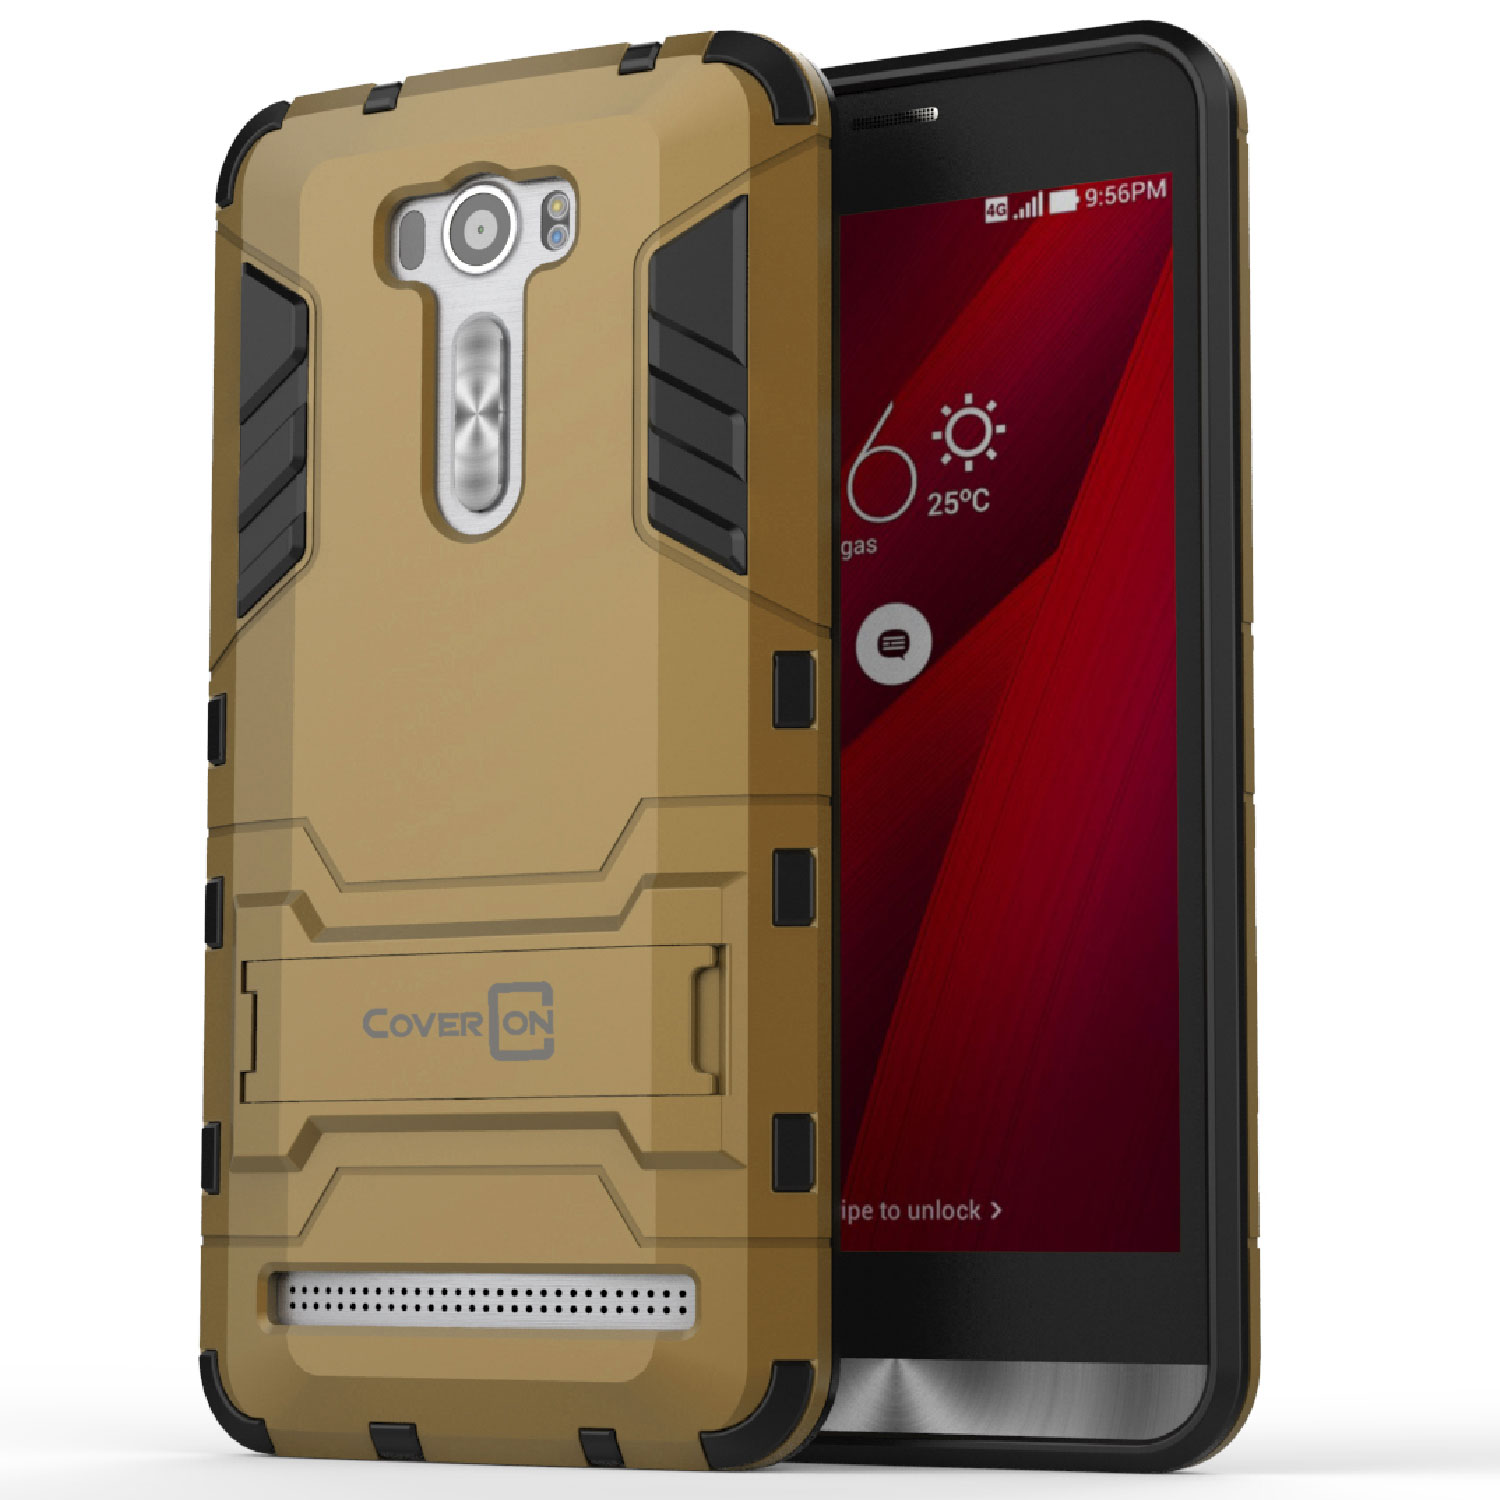 new arrival 2028e 8ed48 Details about for Asus Zenfone 2 Laser 6.0